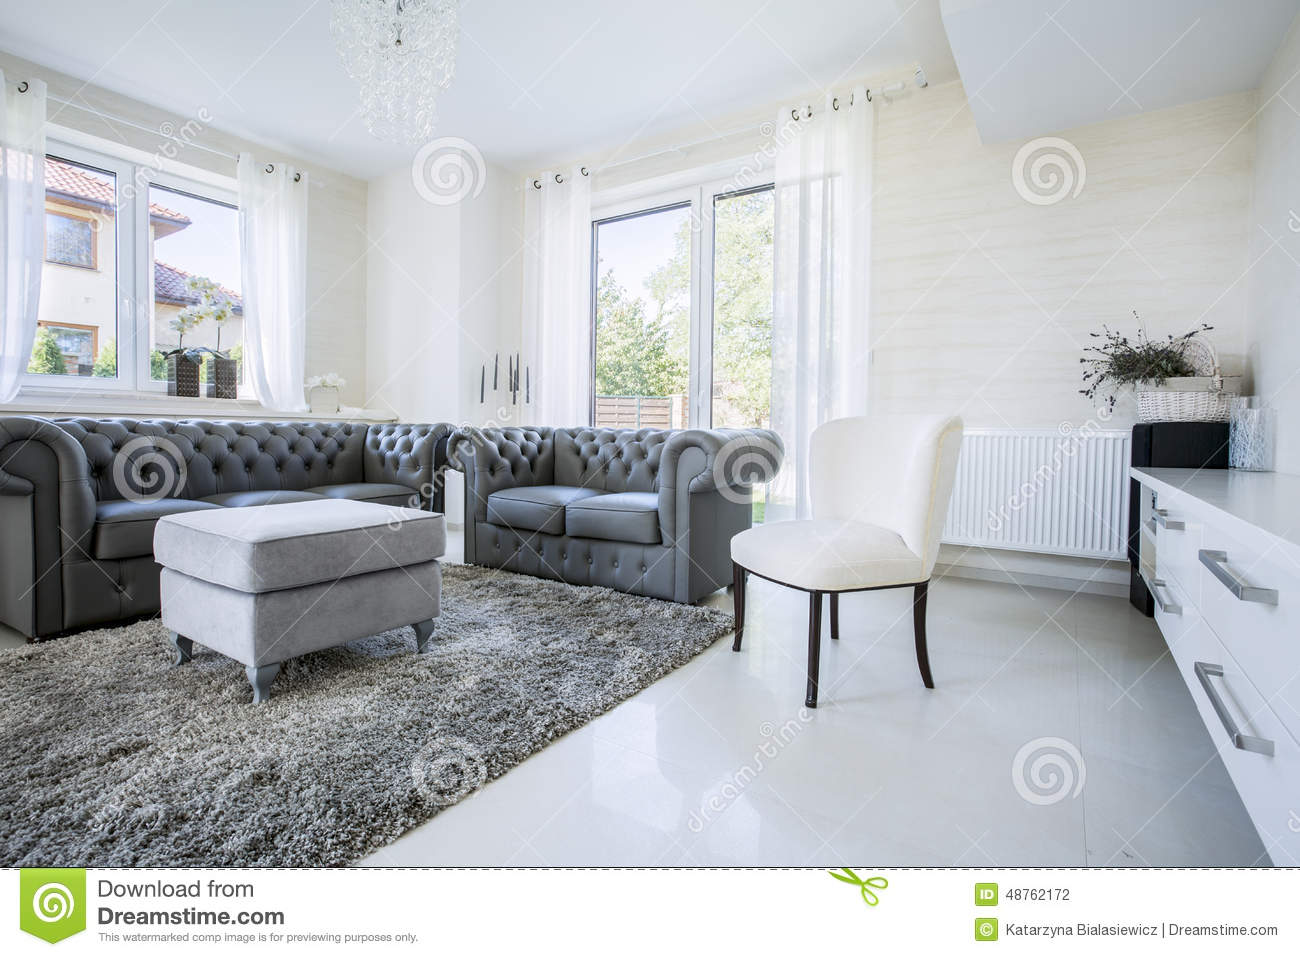 Merveilleux Classic Furniture In Modern House